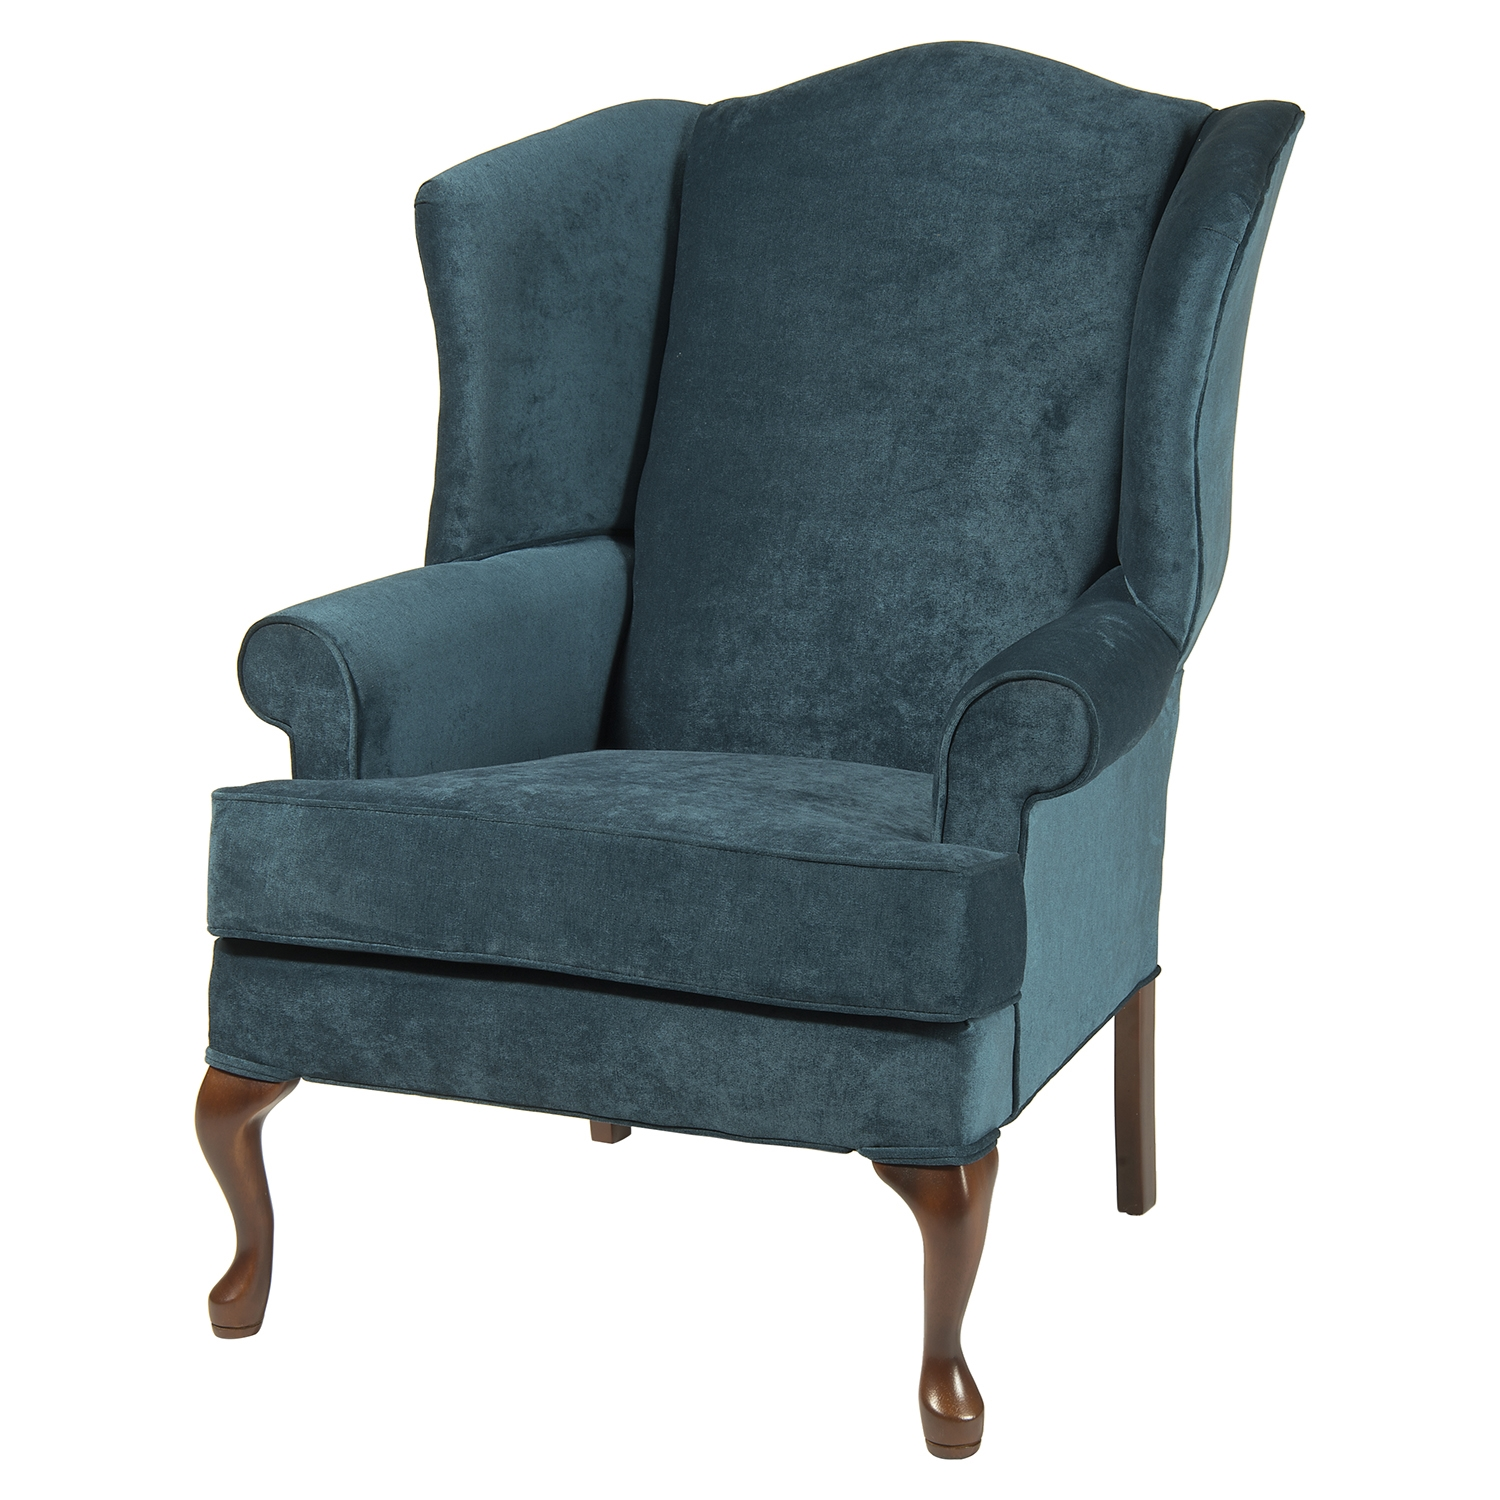 Elizabeth Wingback Chair - Ocean, Cherry